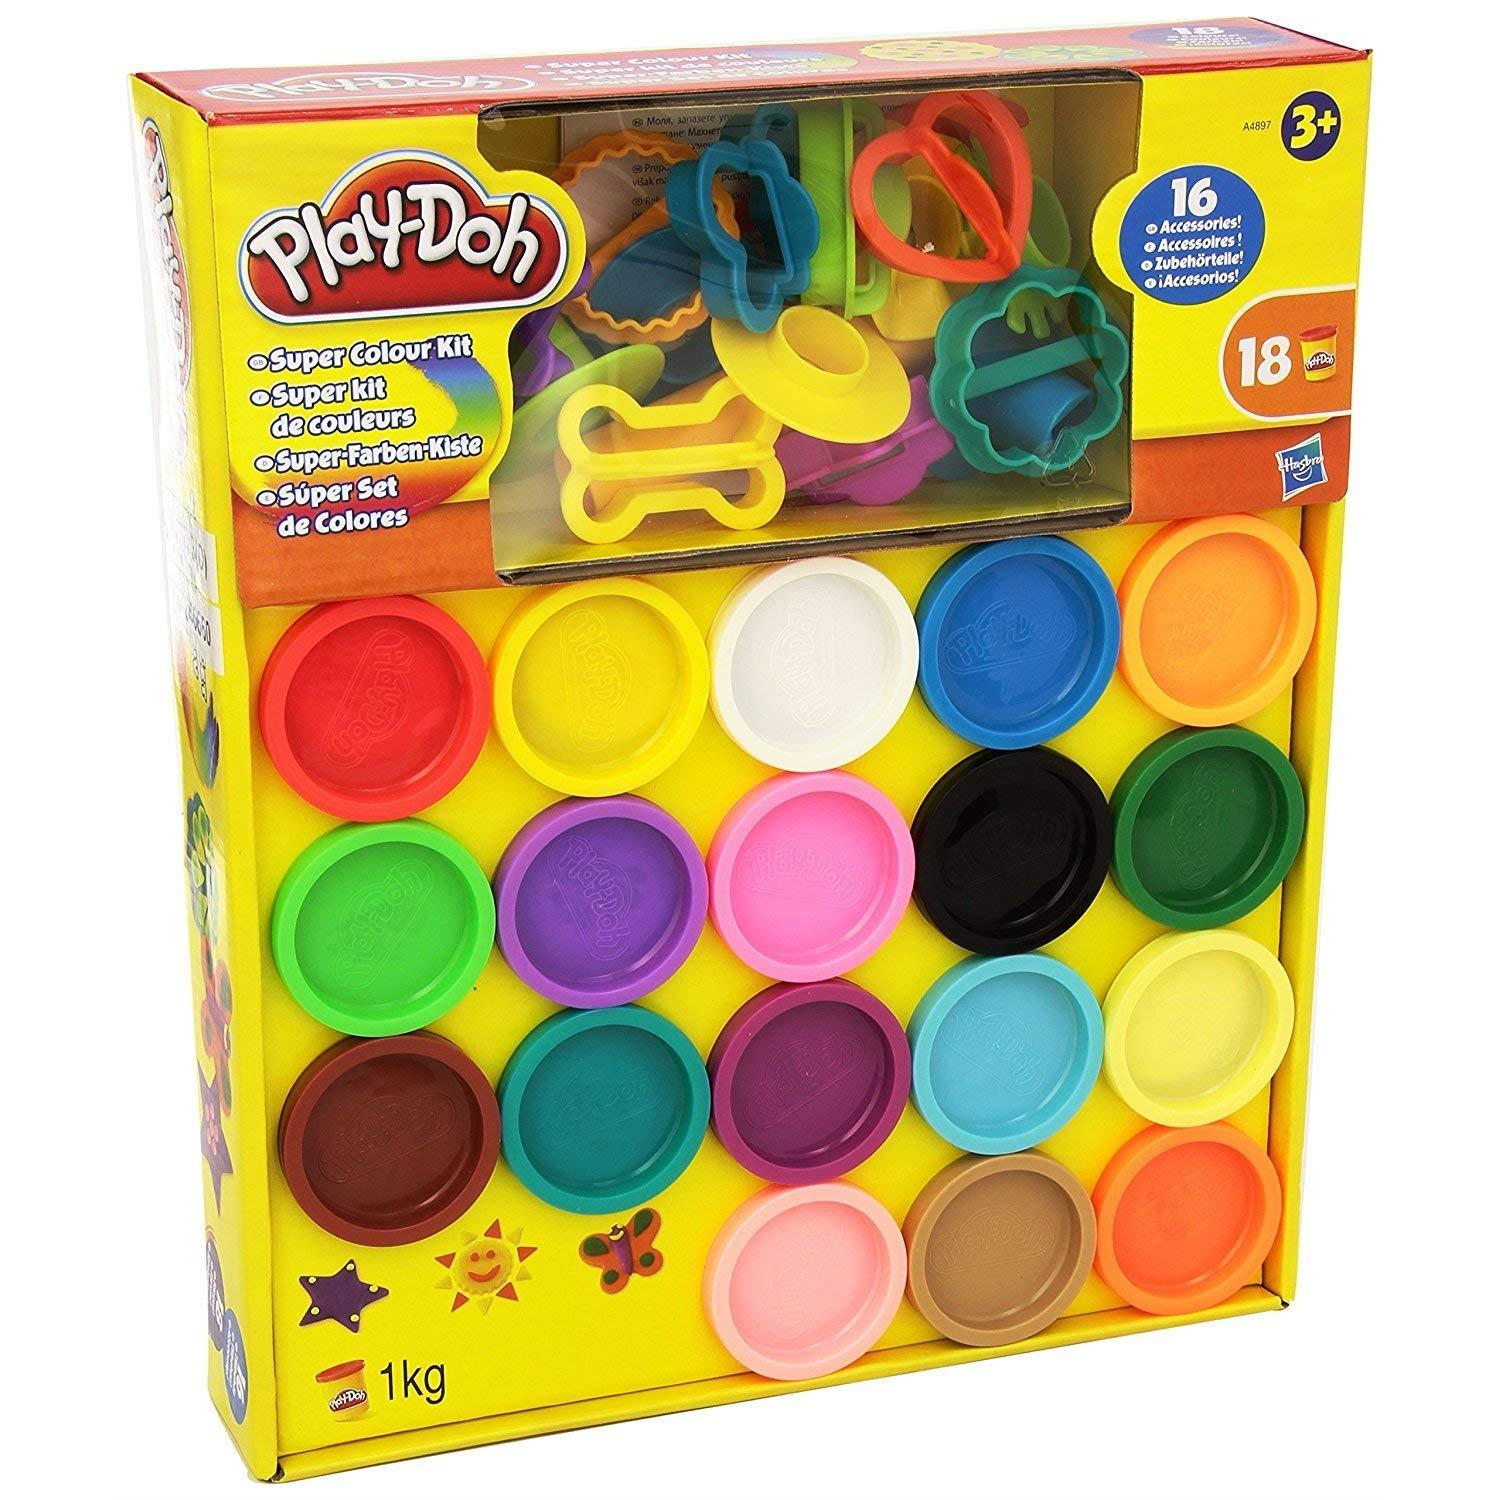 Play Doh Knet Küche Hasbro A4897 Play Doh Super Colour Kit